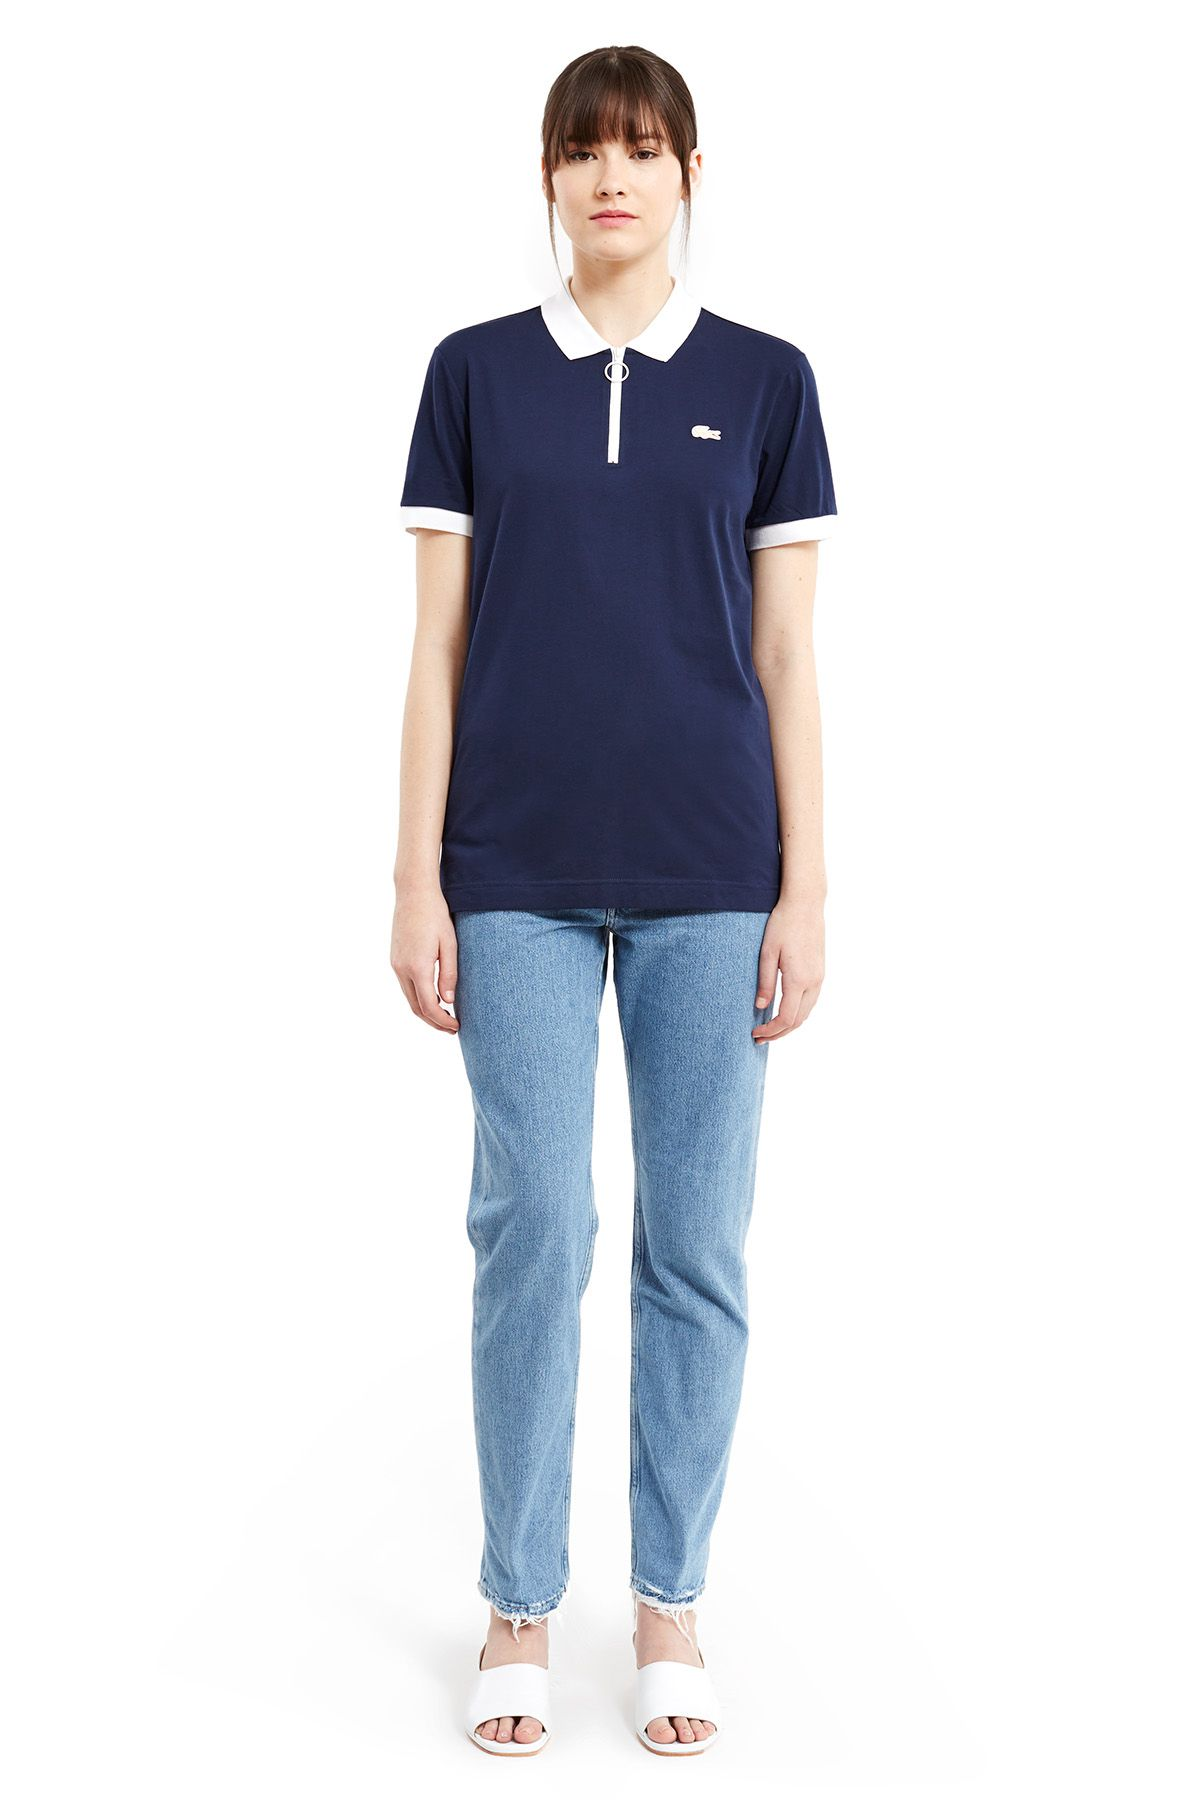 Lacoste x Opening Ceremony navy polo